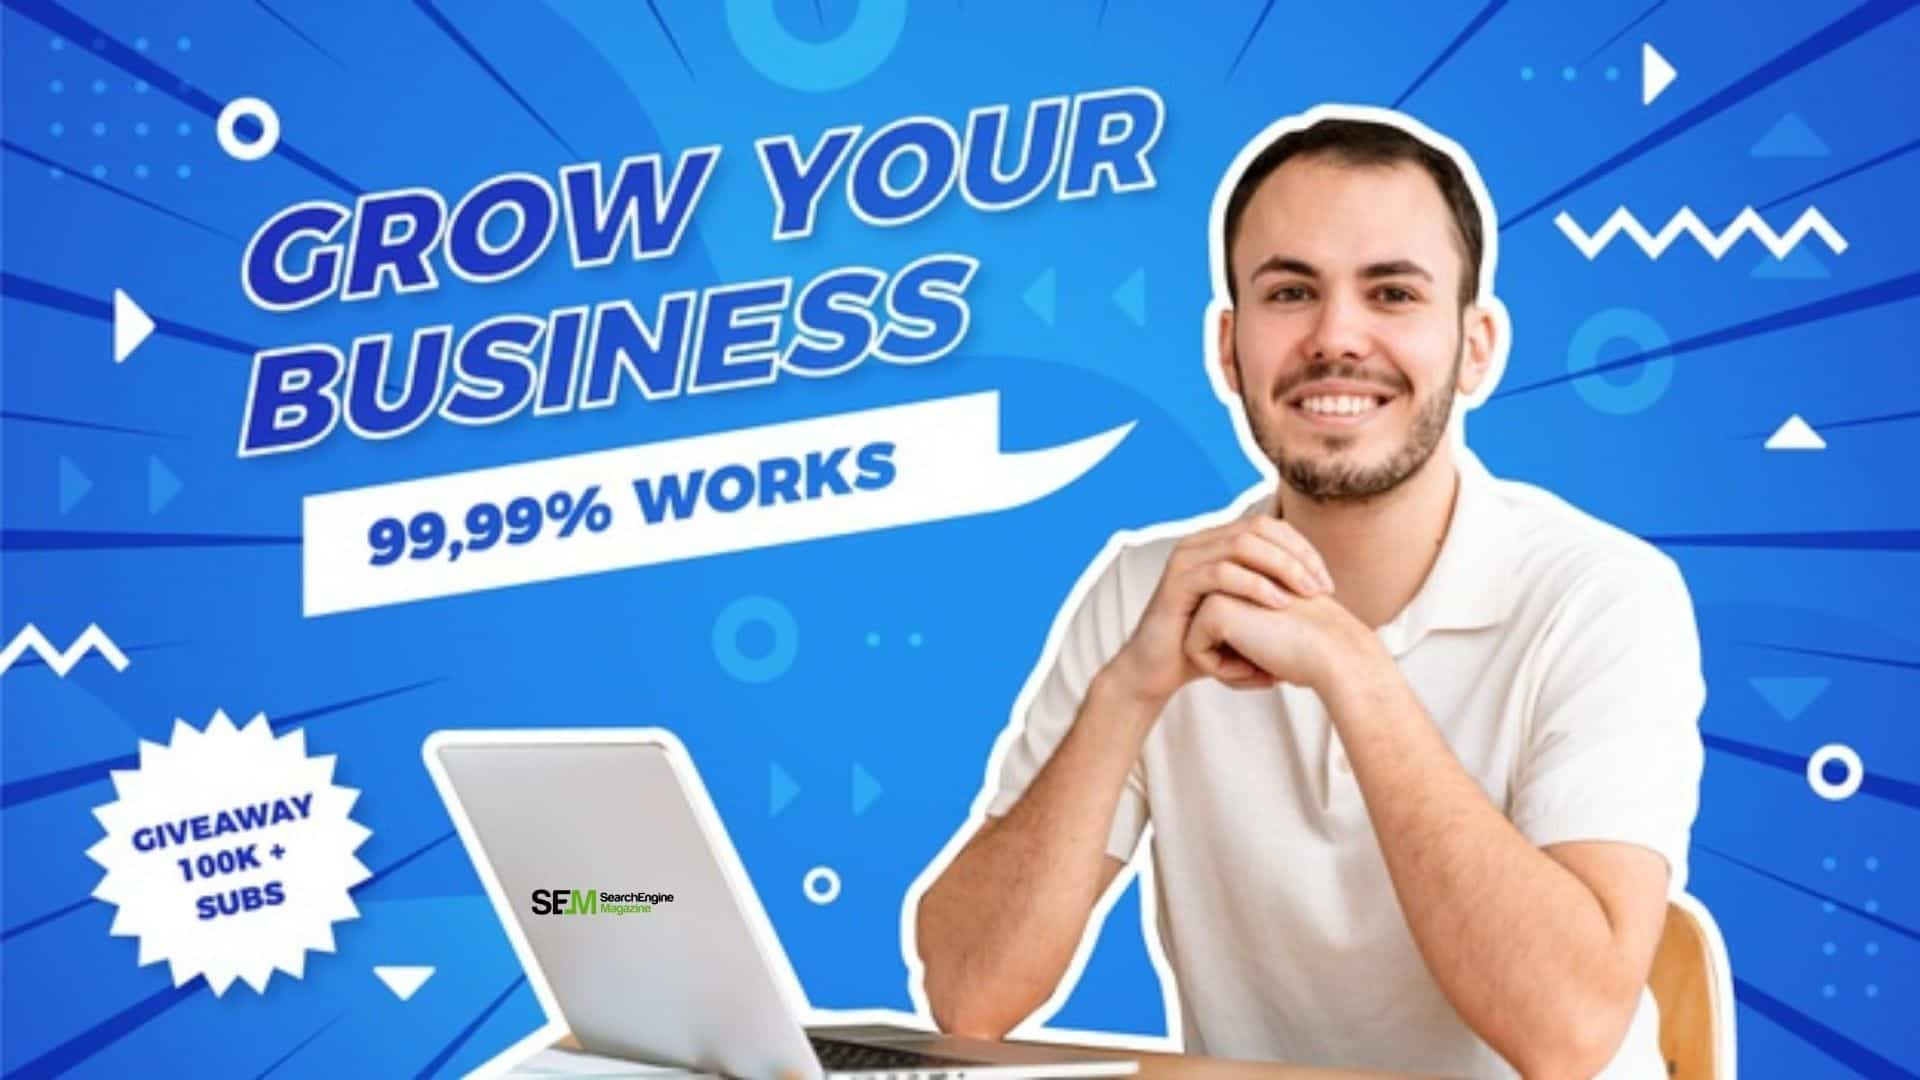 Low Cost Marketing Tactics To Grow Your Business